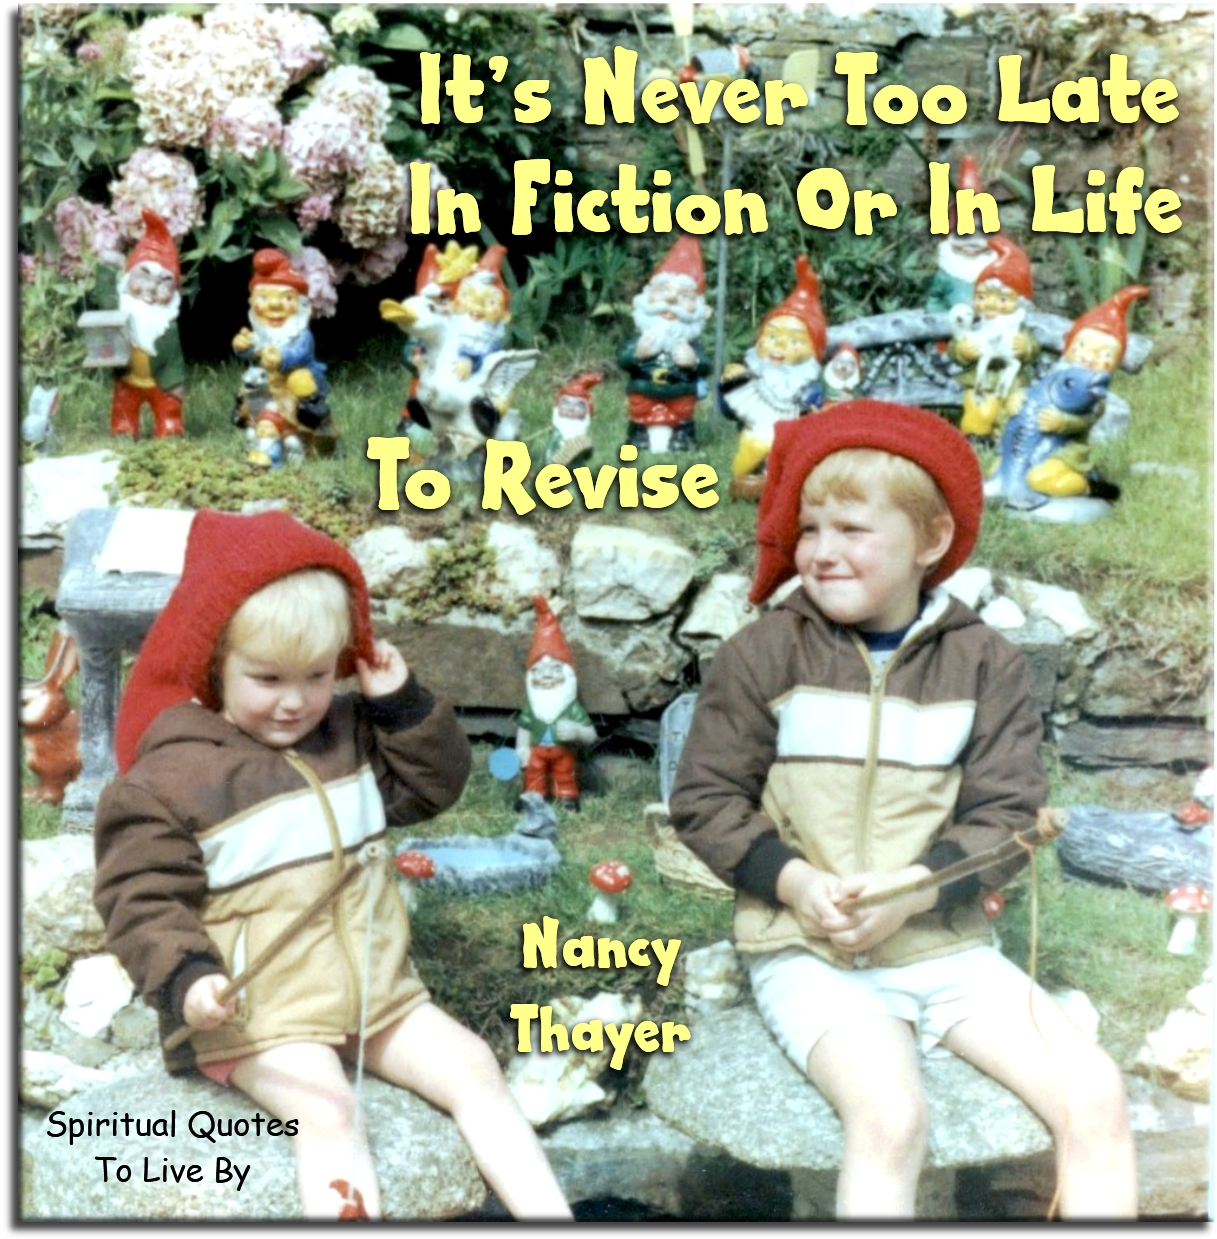 Nancy Thayer quote: It's never too late in fiction or in life to revise. - Spiritual Quotes To Live By